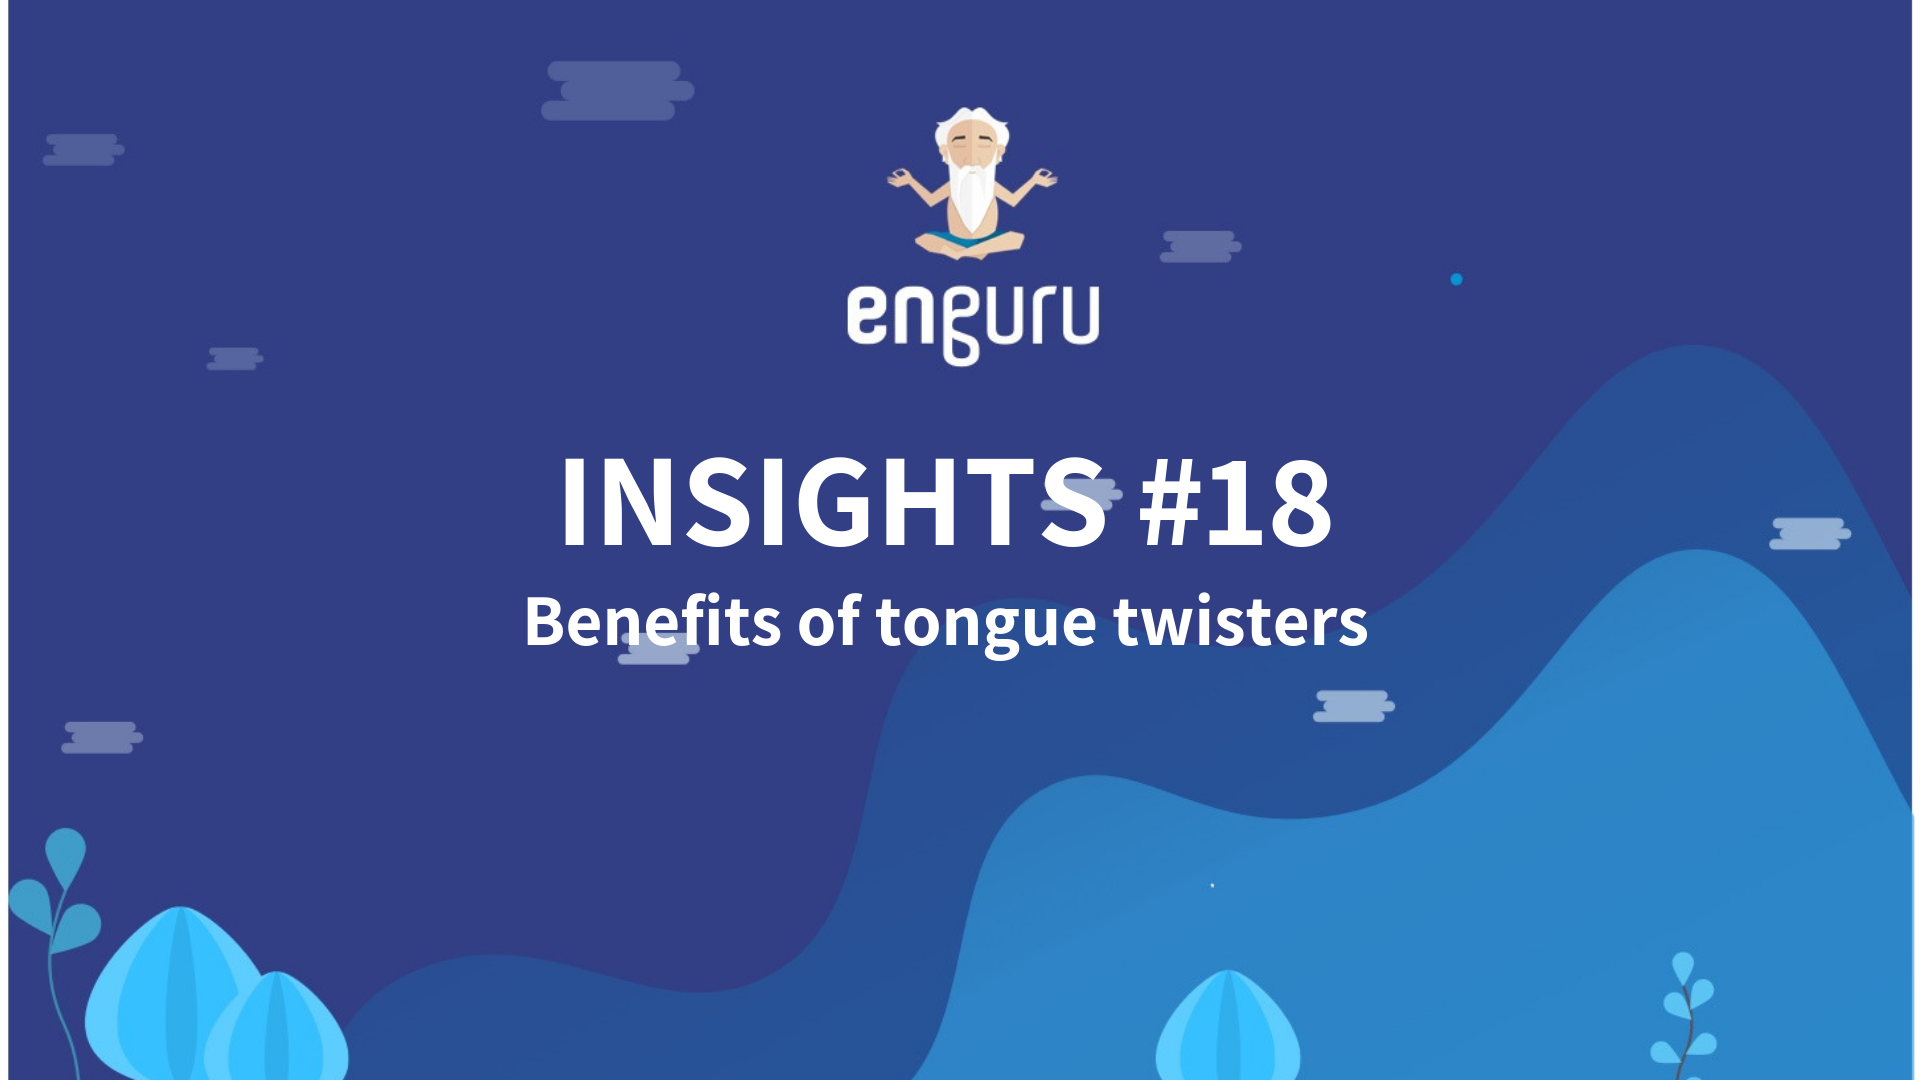 Benefits of tongue twisters